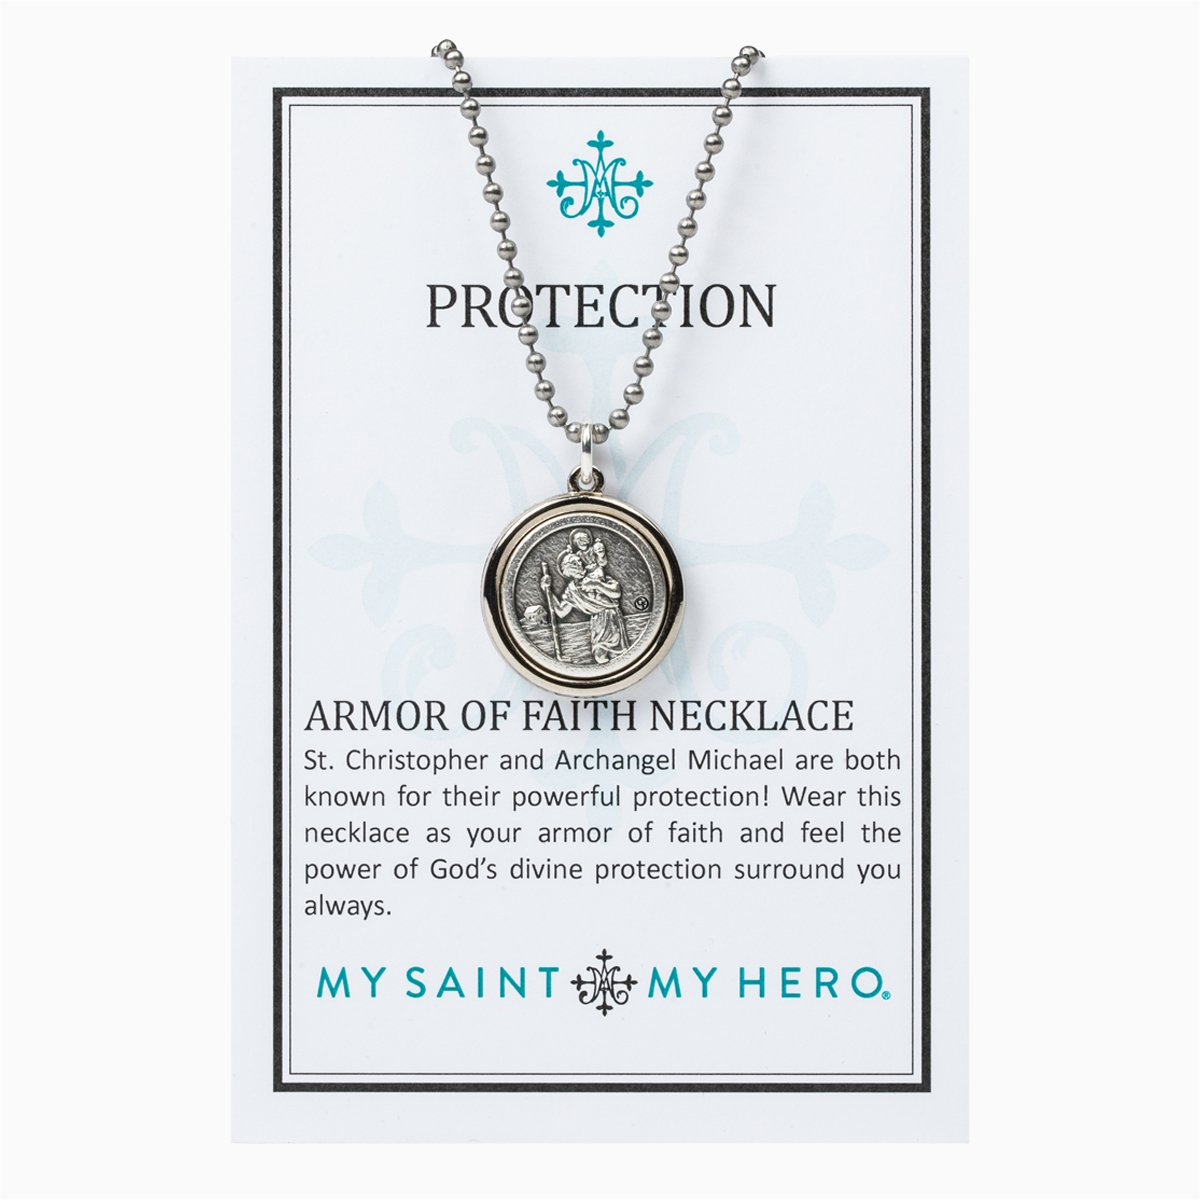 My Saint My Hero Necklace | Protection Armor of Faith Necklace (Bead Ball) Silver | Mens | Womens | Silver Color | 1pc | Christian | Catholic Jewelry